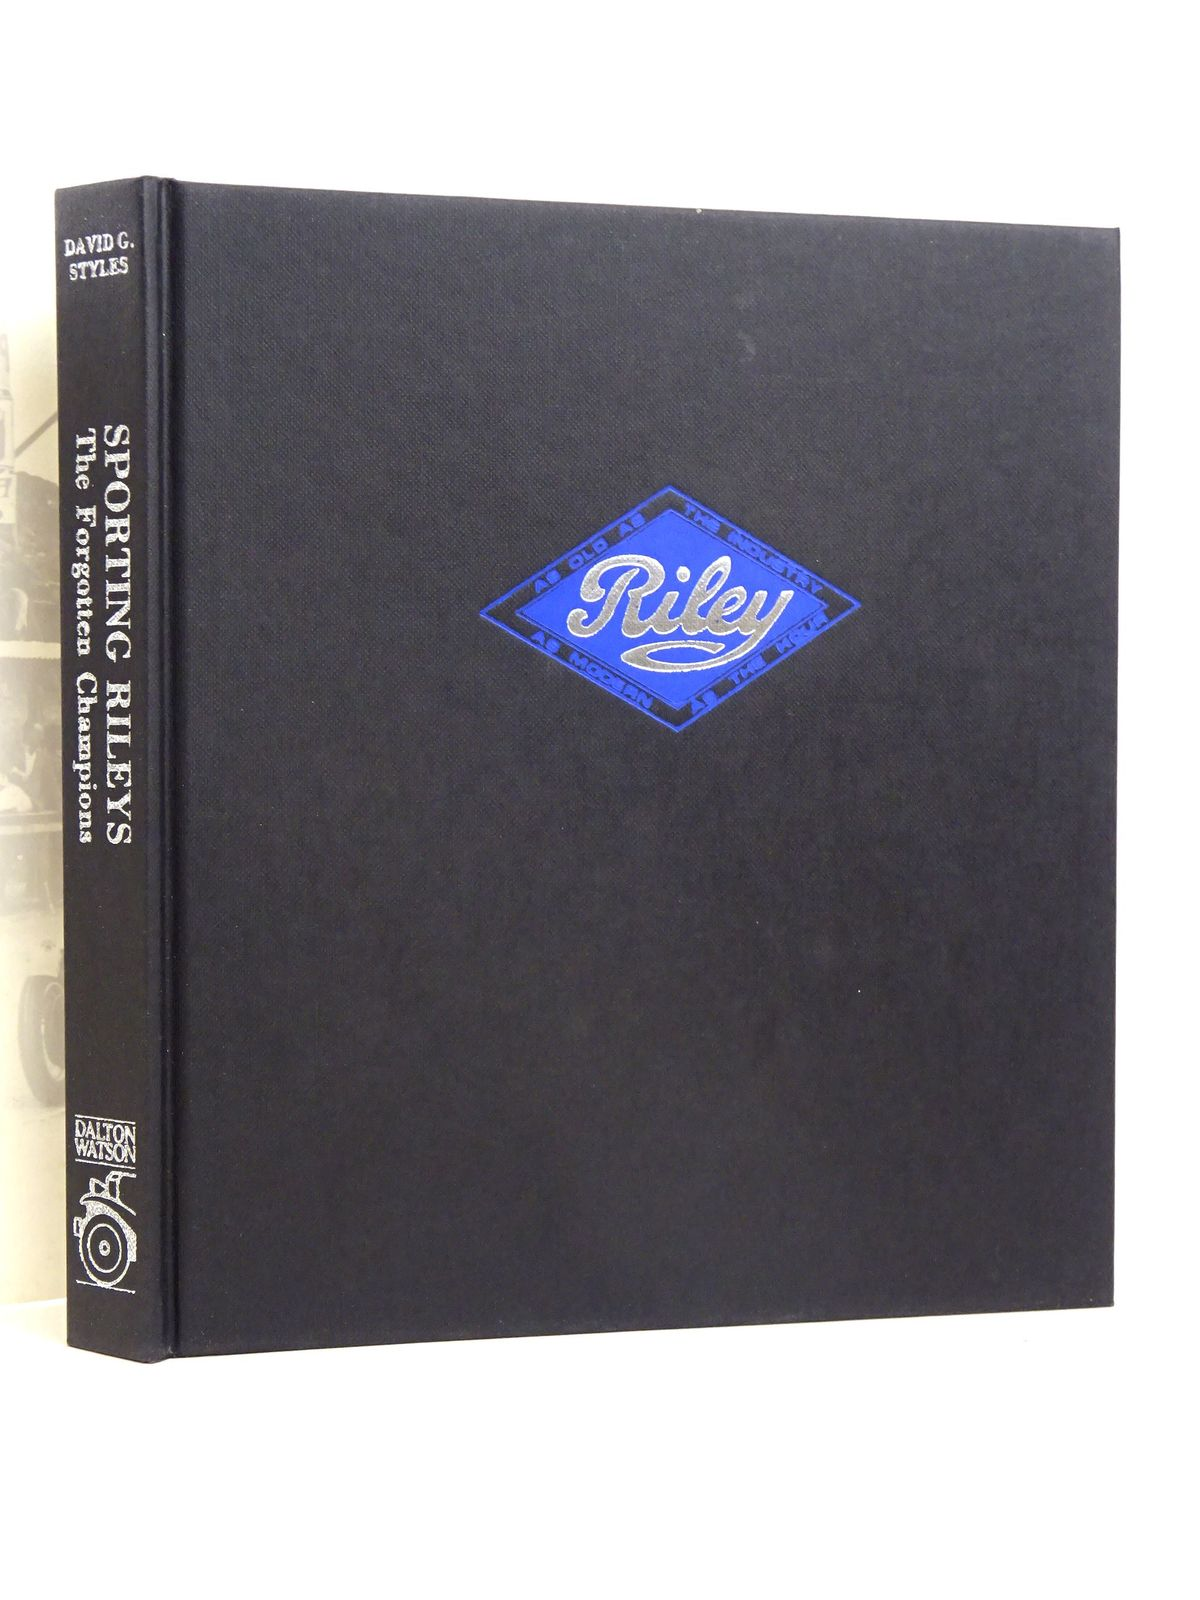 Photo of SPORTING RILEYS: THE FORGOTTEN CHAMPIONS written by Styles, David G. published by Dalton Watson (STOCK CODE: 1818499)  for sale by Stella & Rose's Books